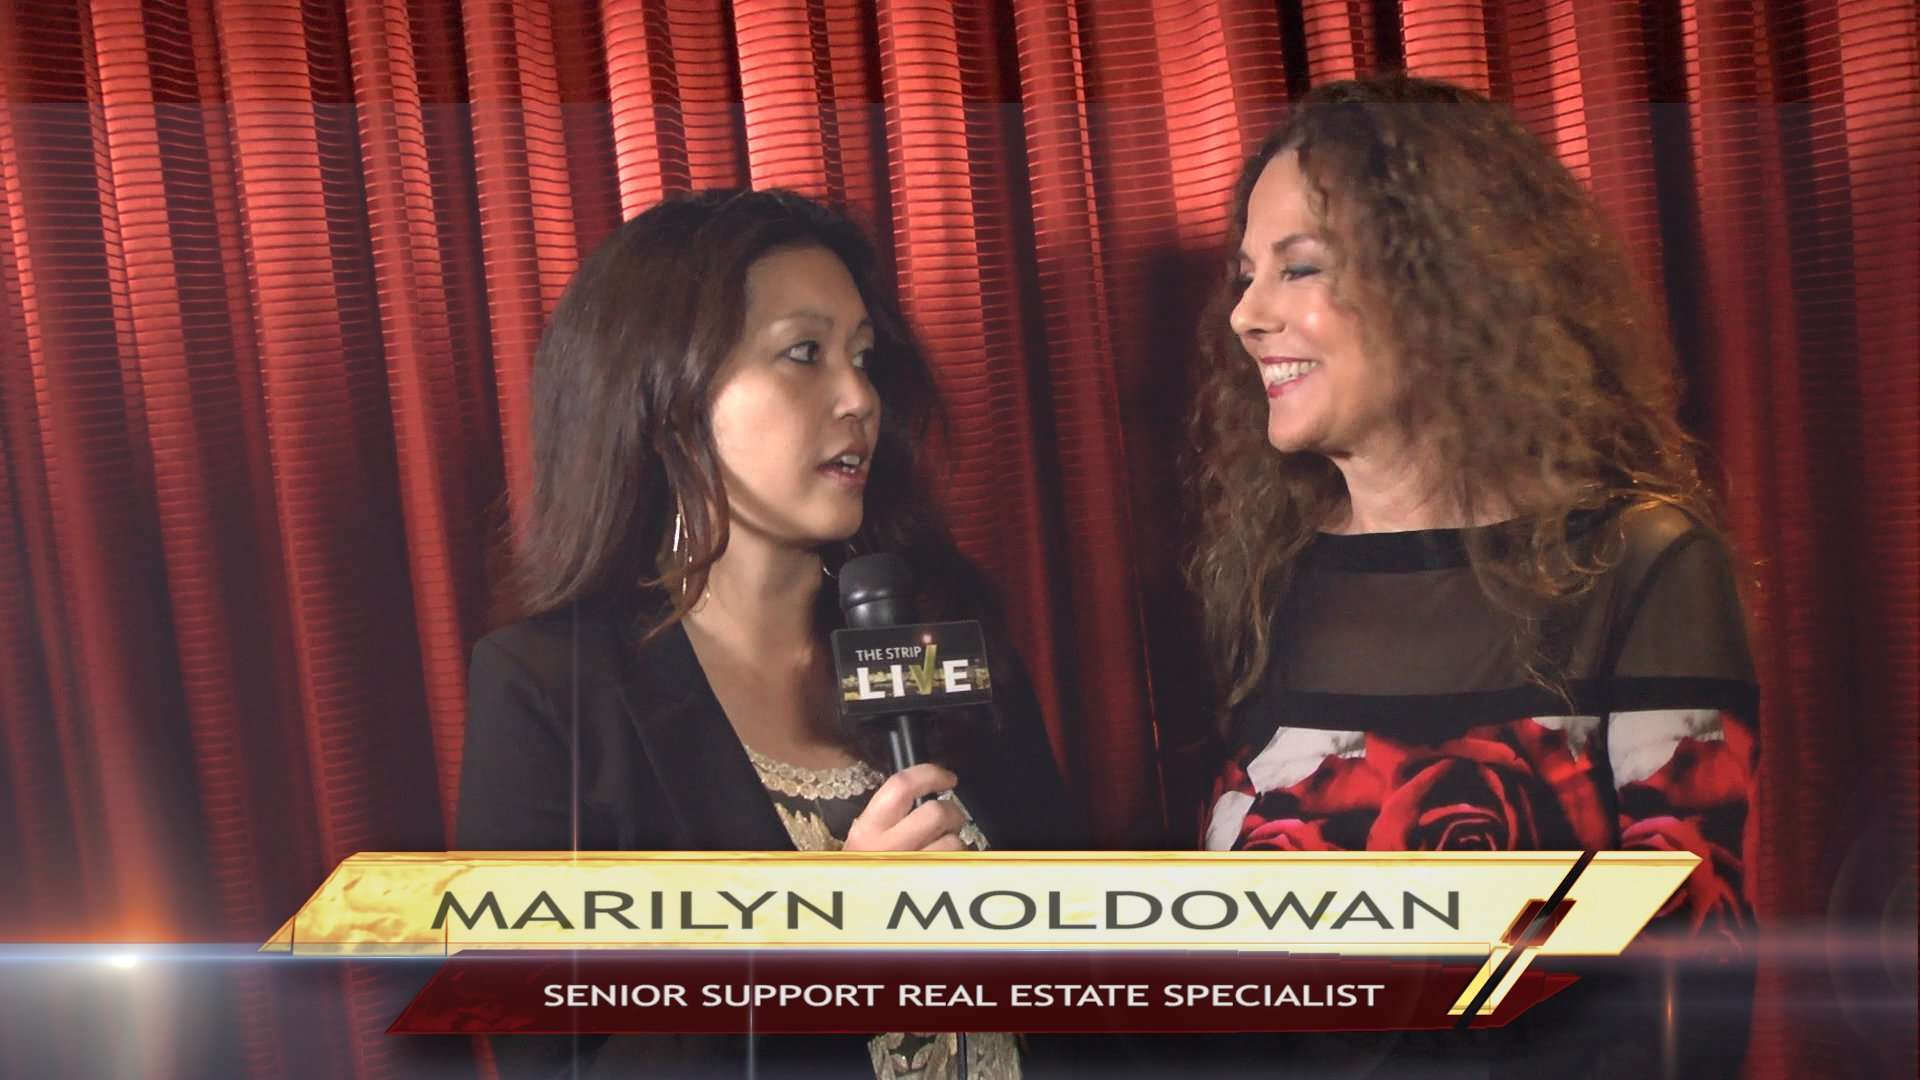 Marilyn Moldowan wants every girl to know that they are able to achieve greatness despite what others say